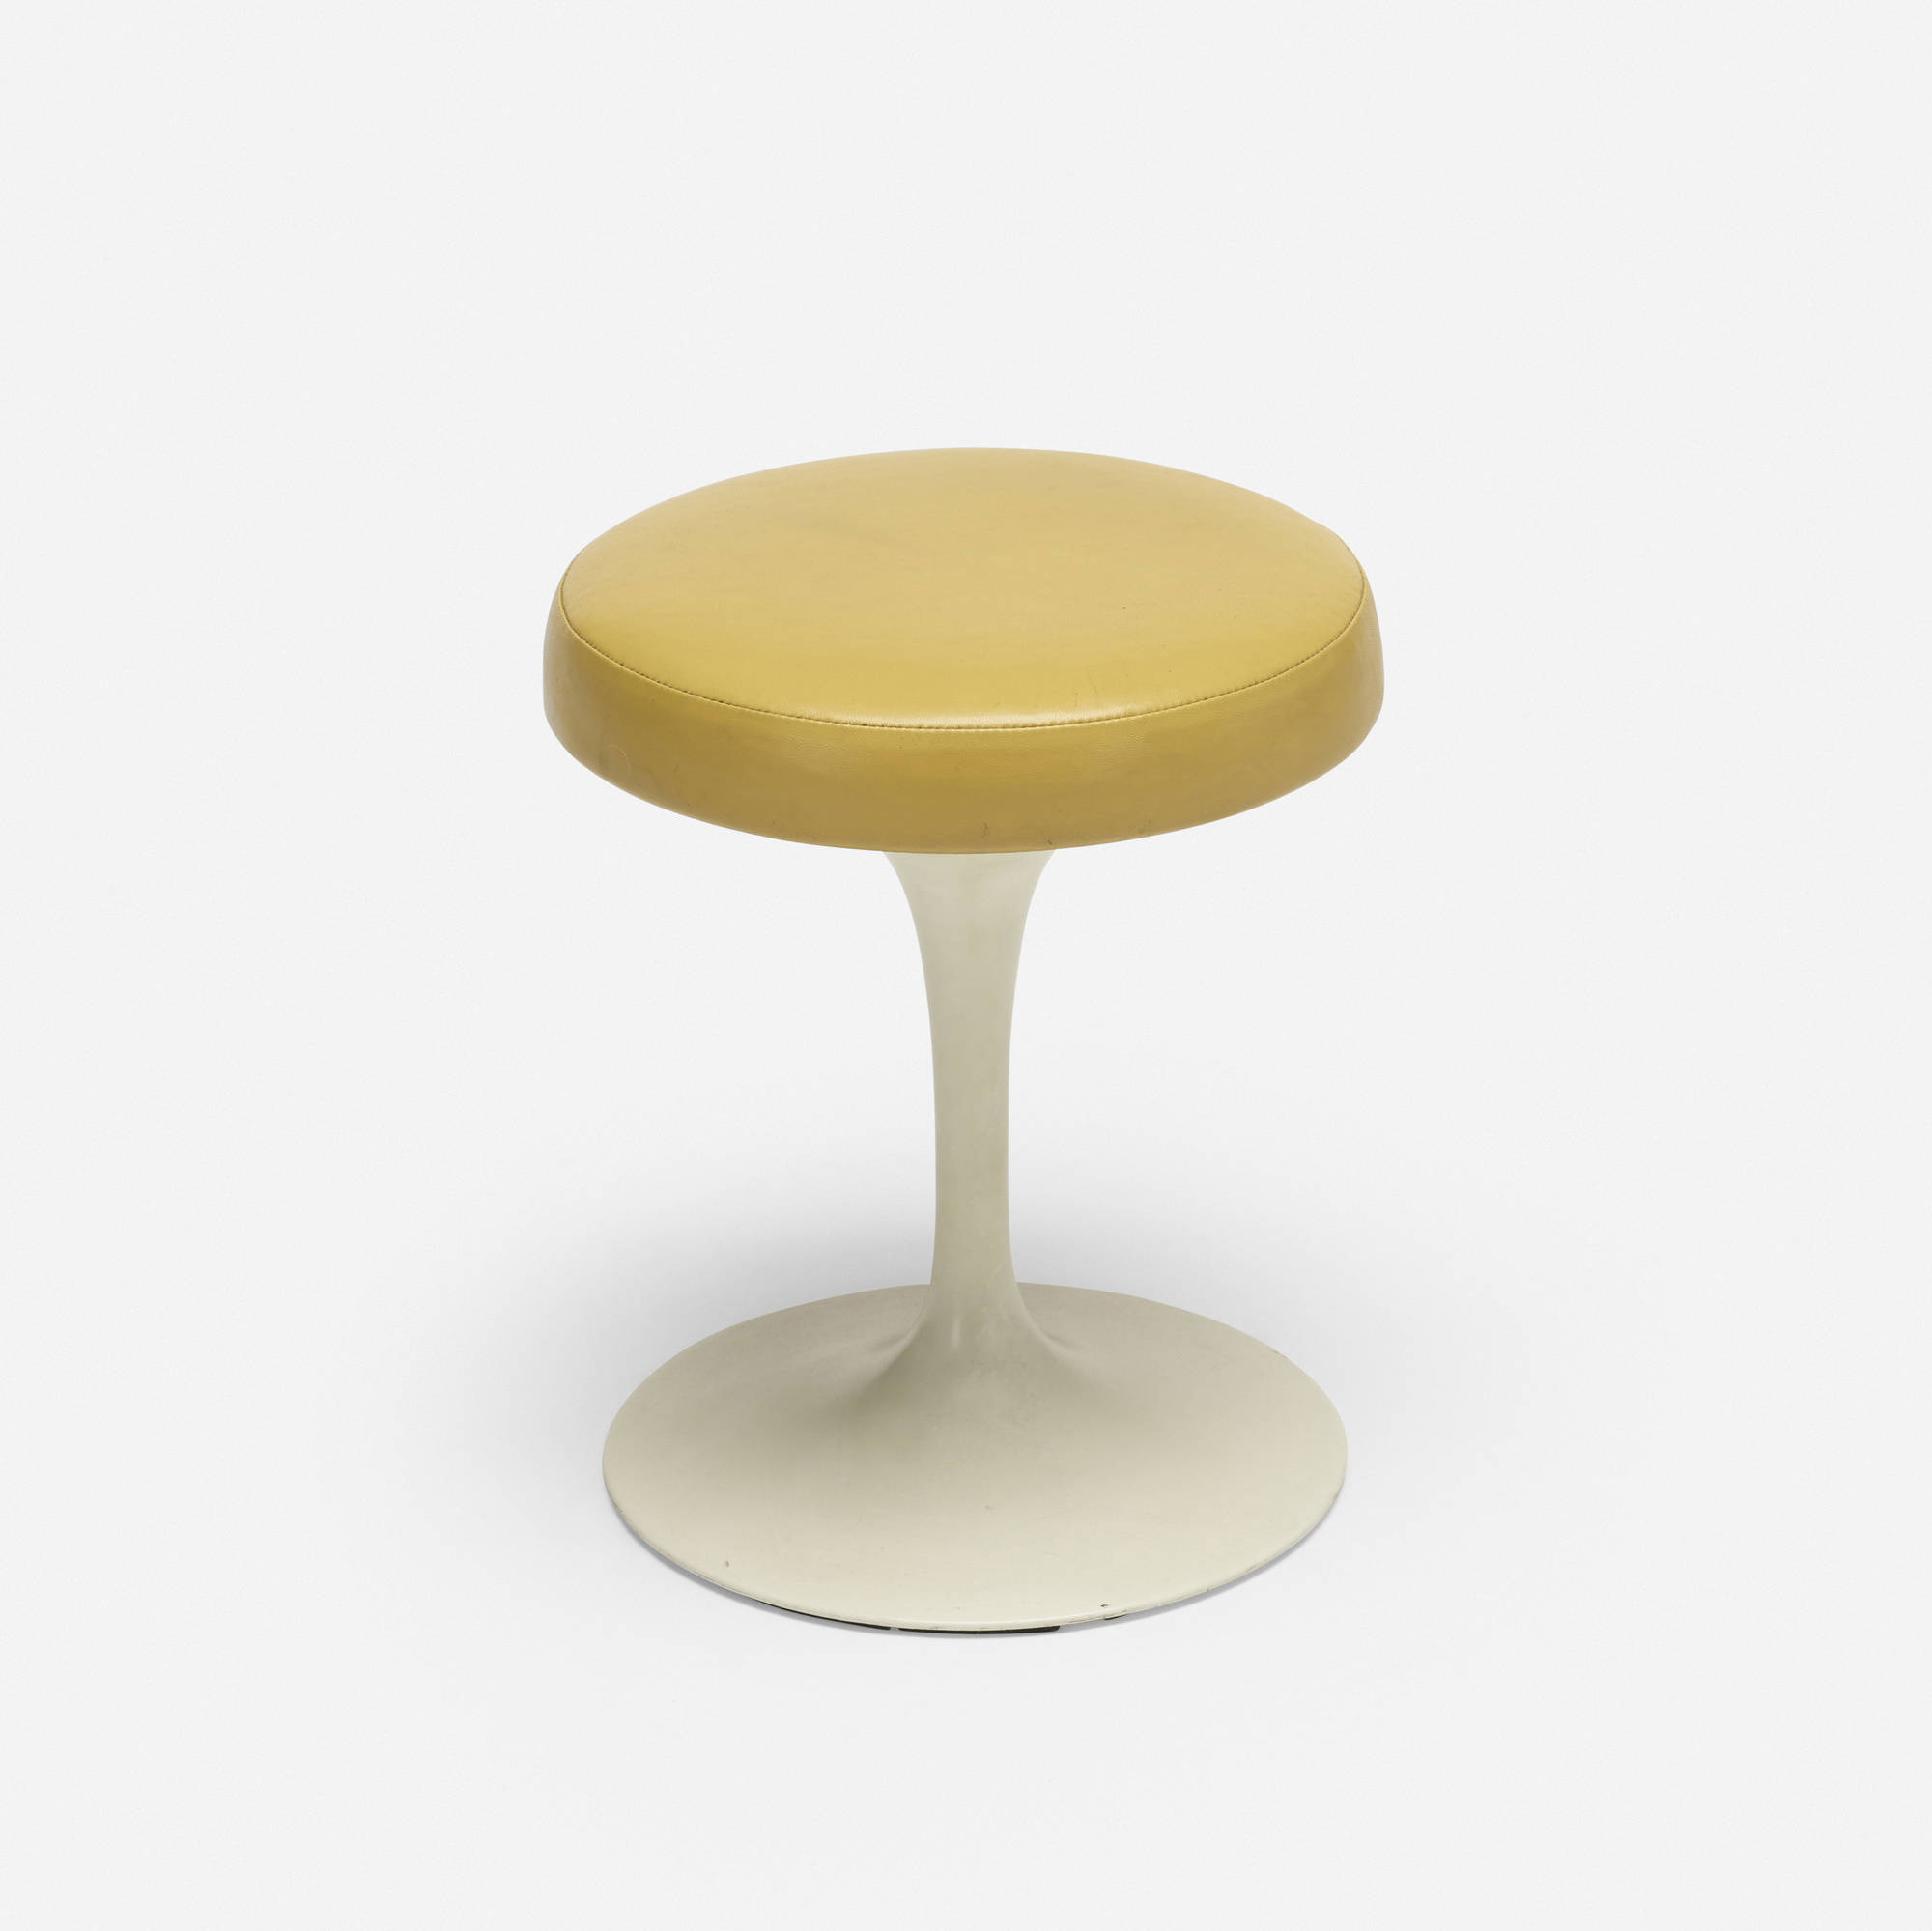 703: Eero Saarinen / Tulip stool (1 of 2)